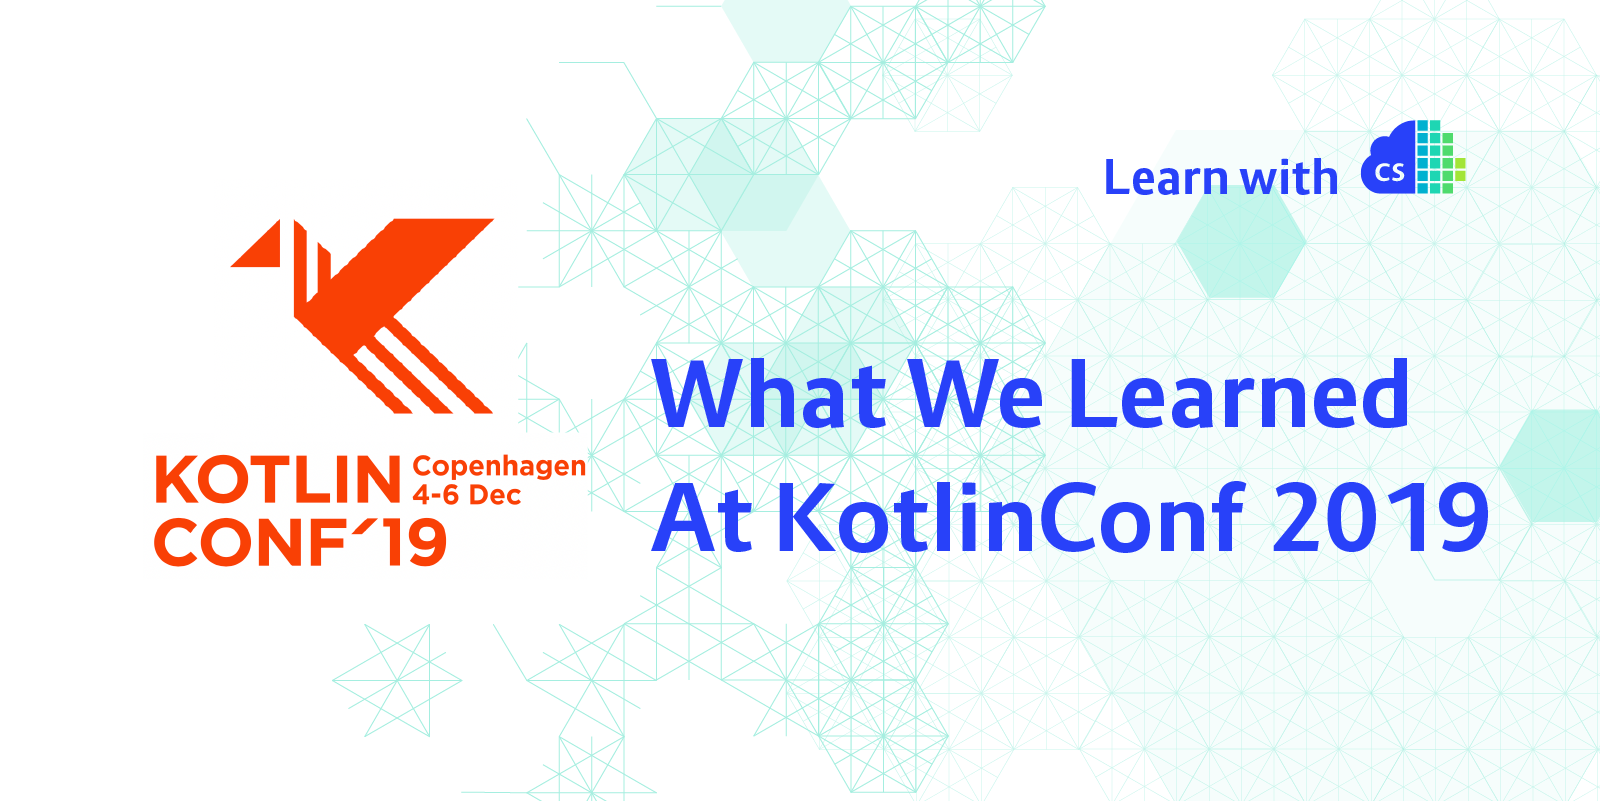 What We Learned at KotlinConf 2019, Container Solutions